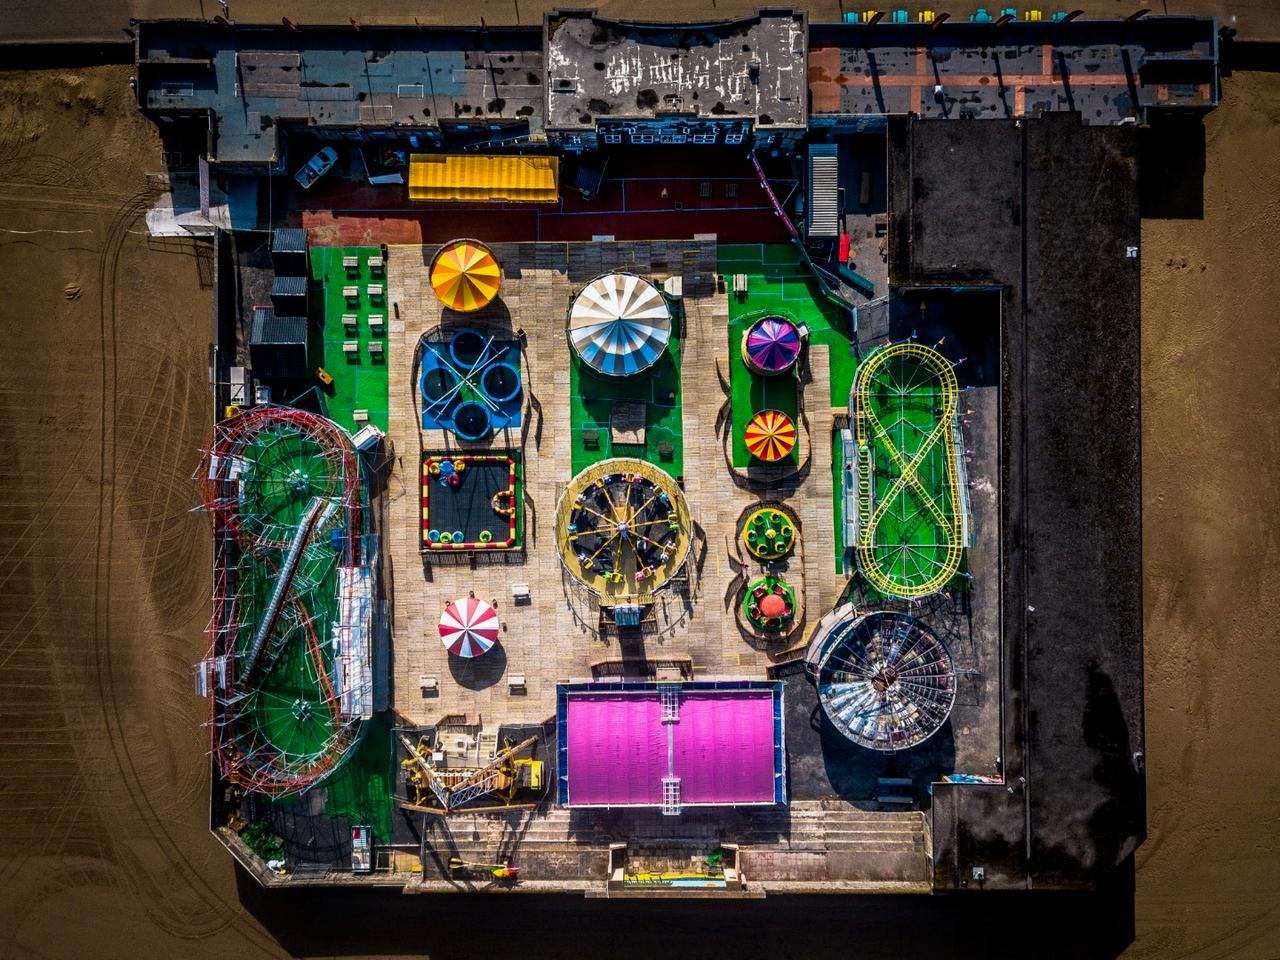 View from above at first glance could be mistaken for a circuit board but this early morning shot of the funfair at Weston Super Mare along the beach